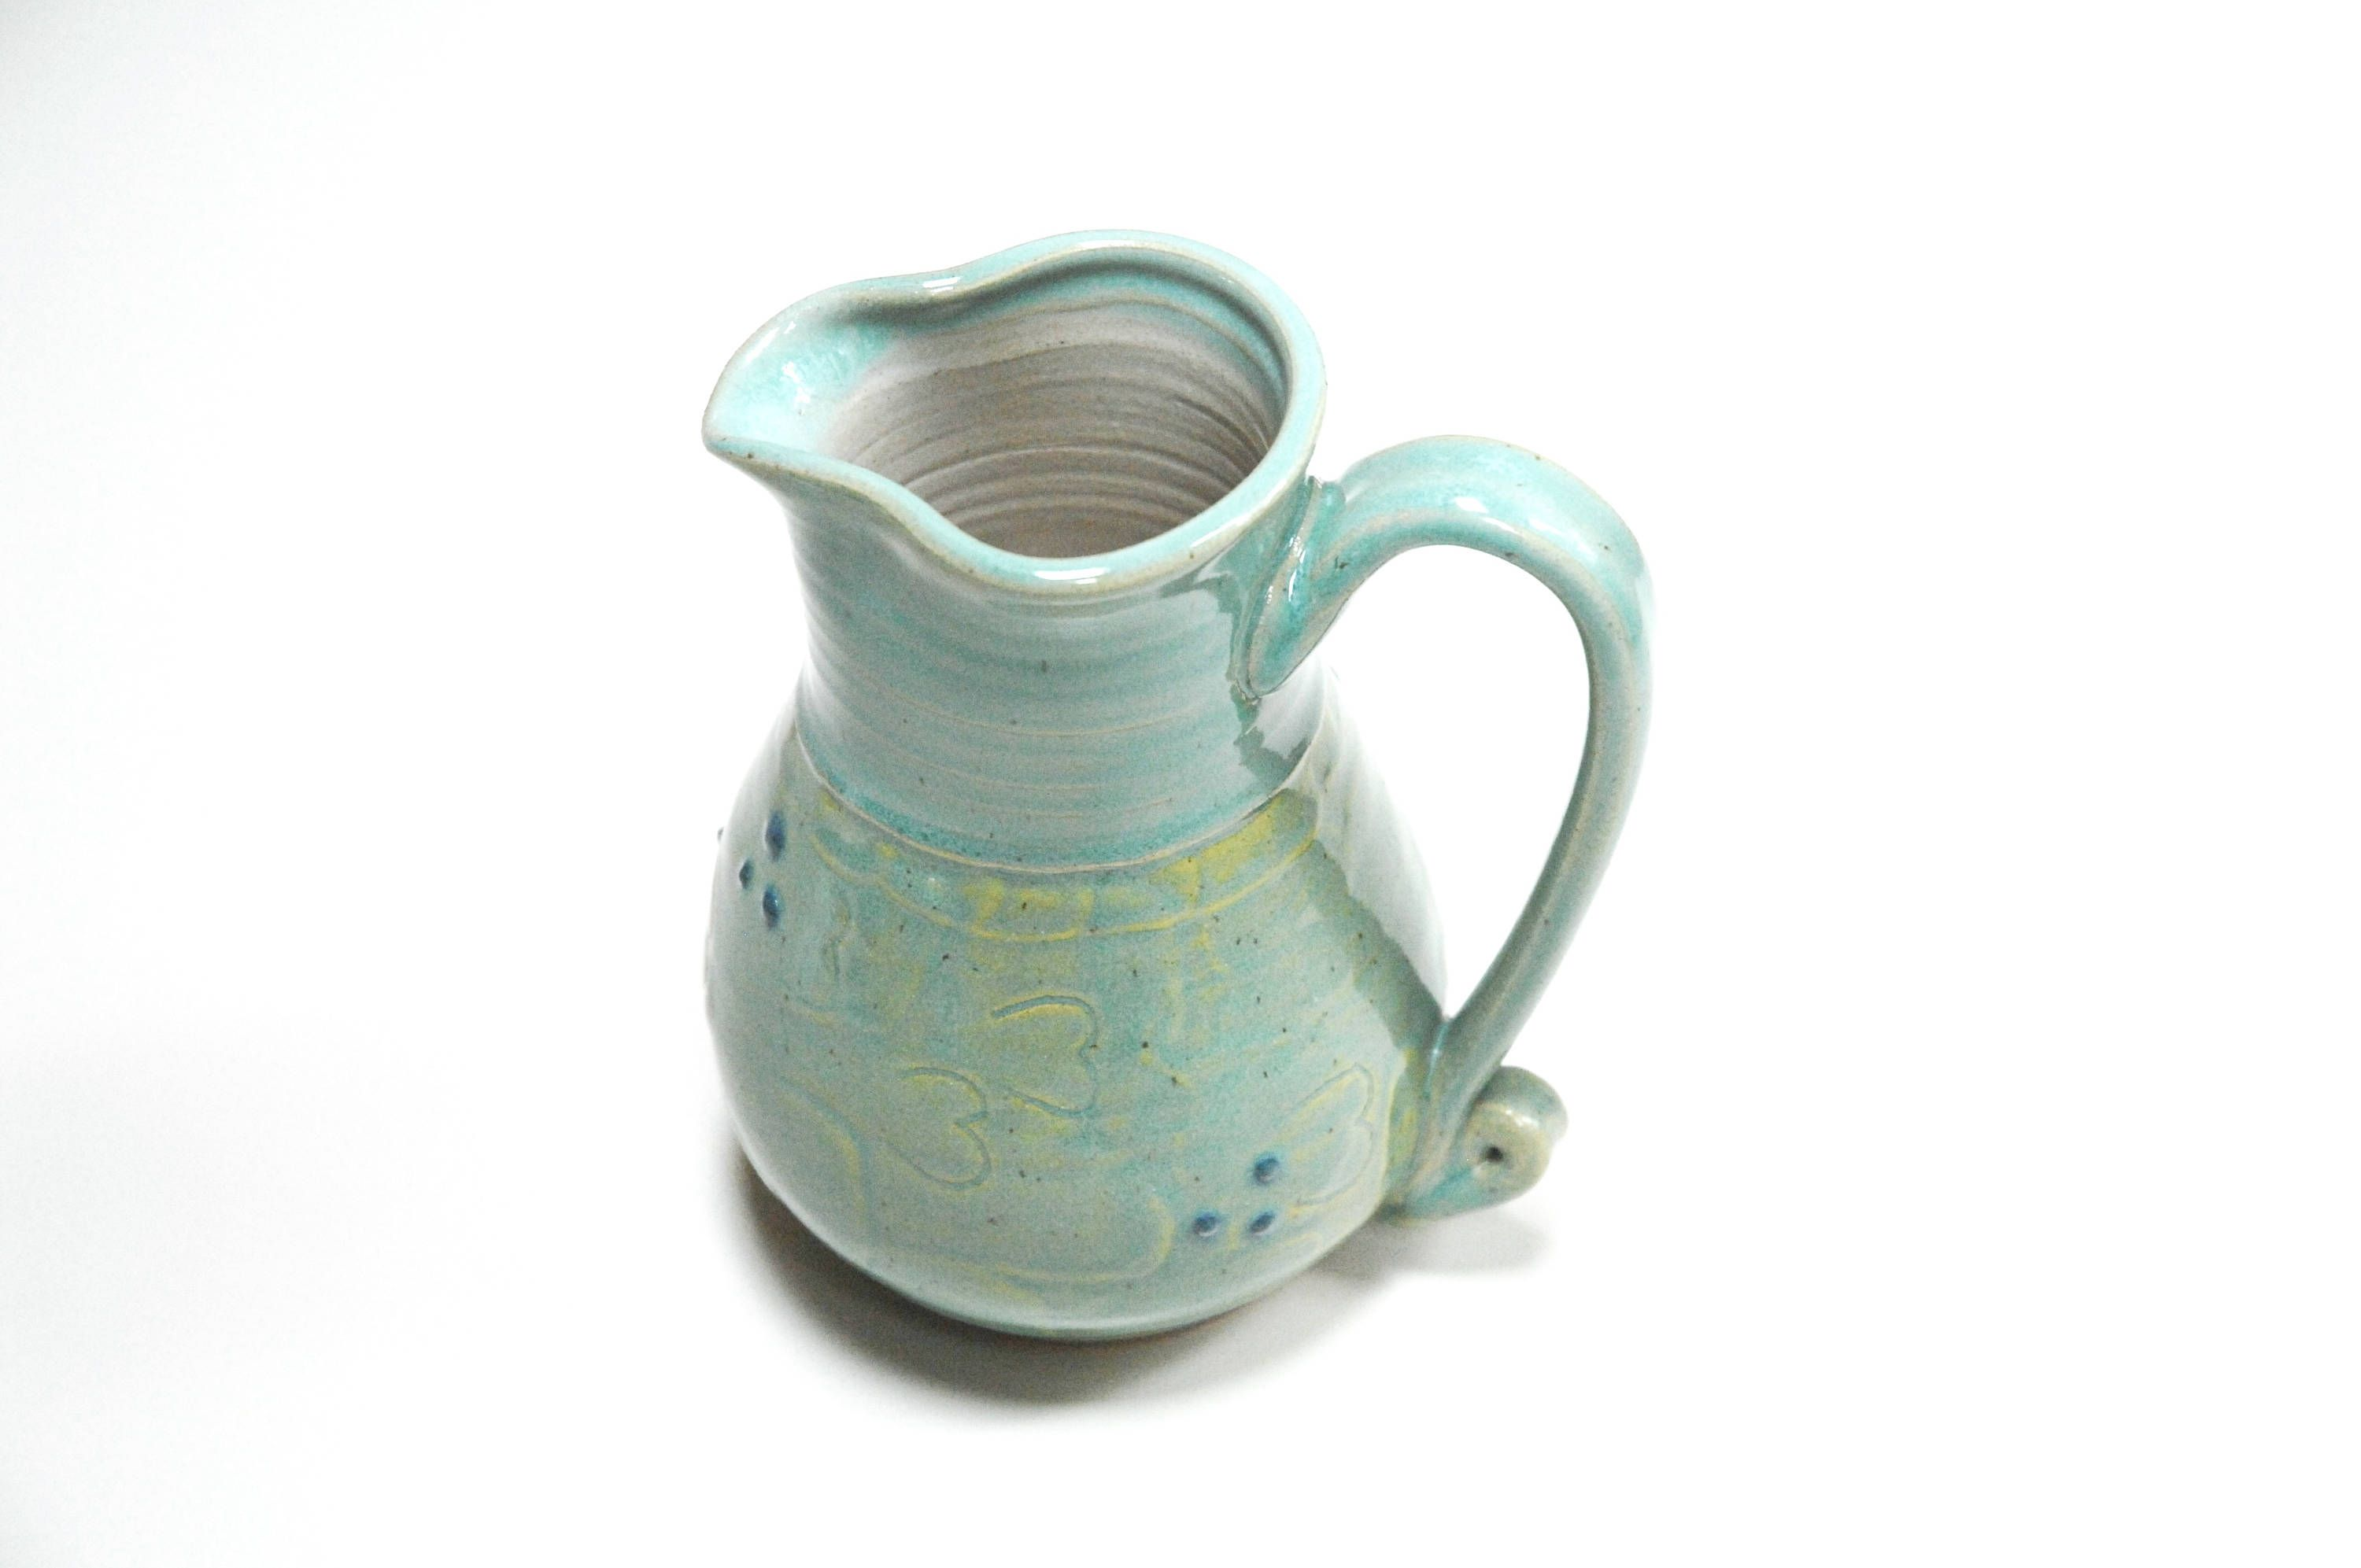 Green Pottery jug,Clay pouring jug,large gravy boat,Large